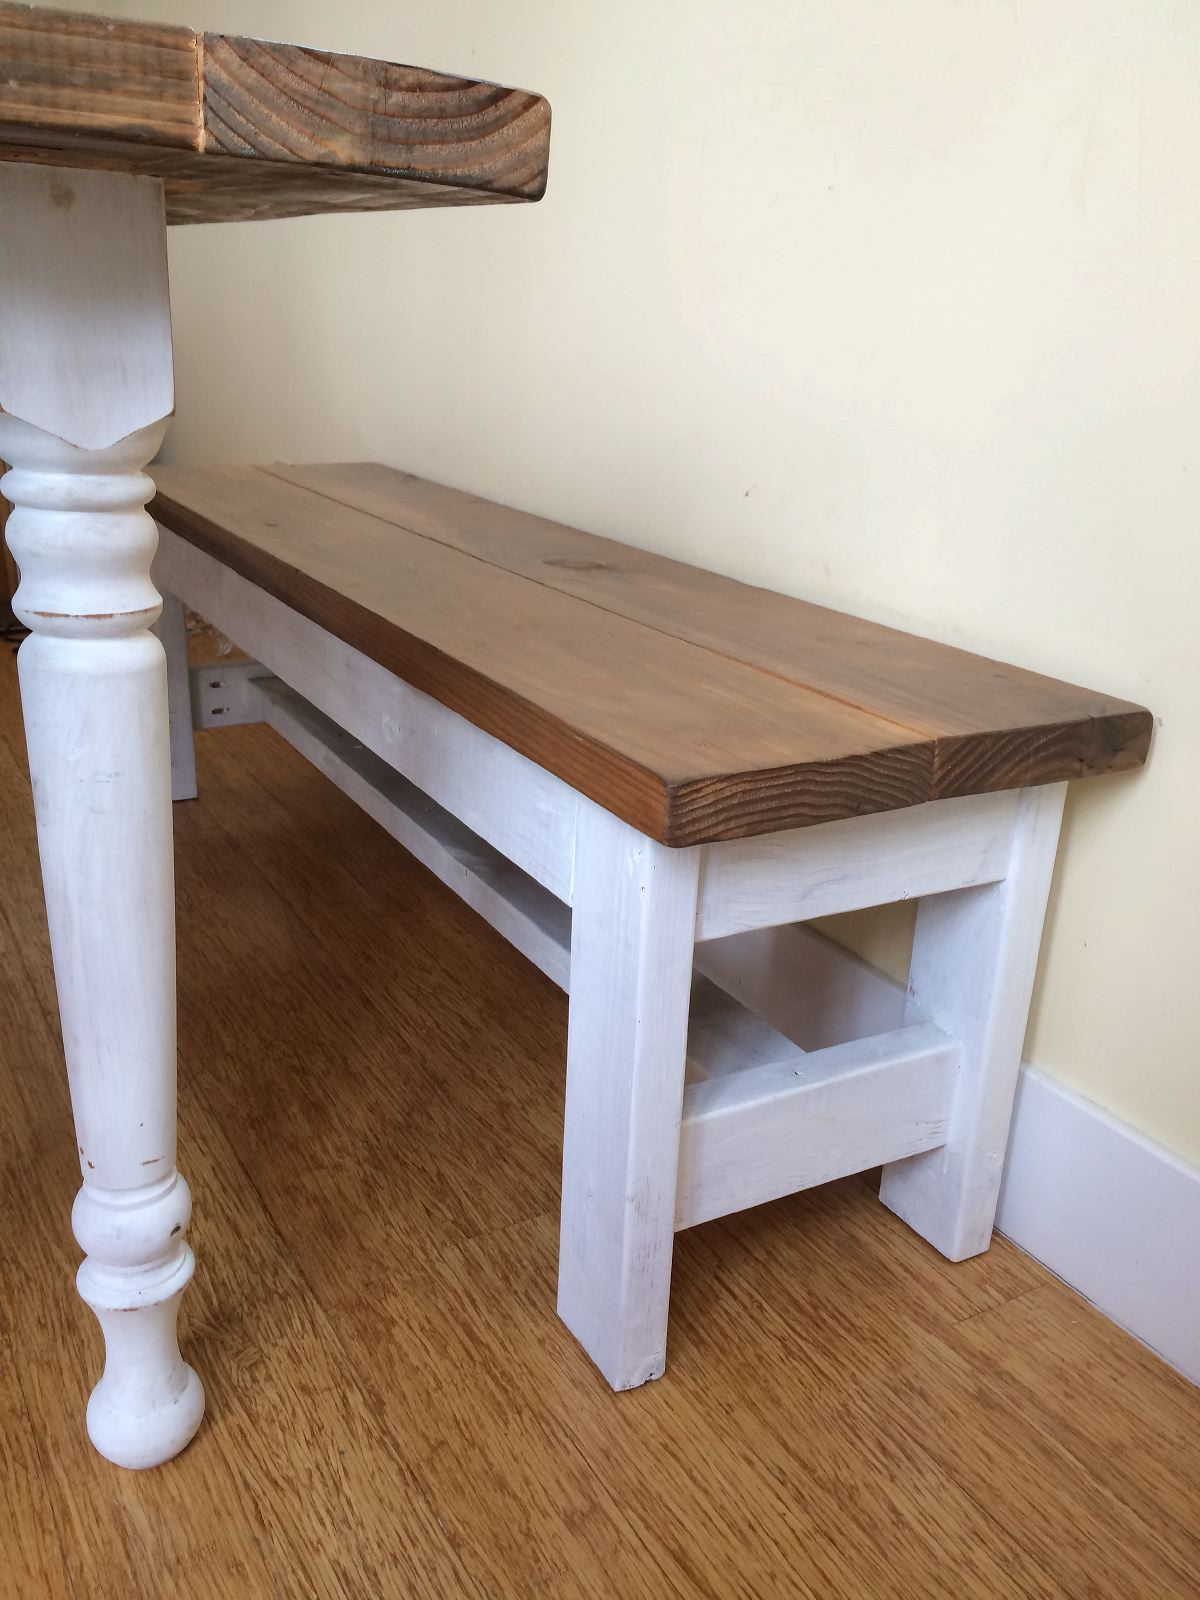 DIY Building A Farmhouse Table And Bench Shirley Chris Projects Blog